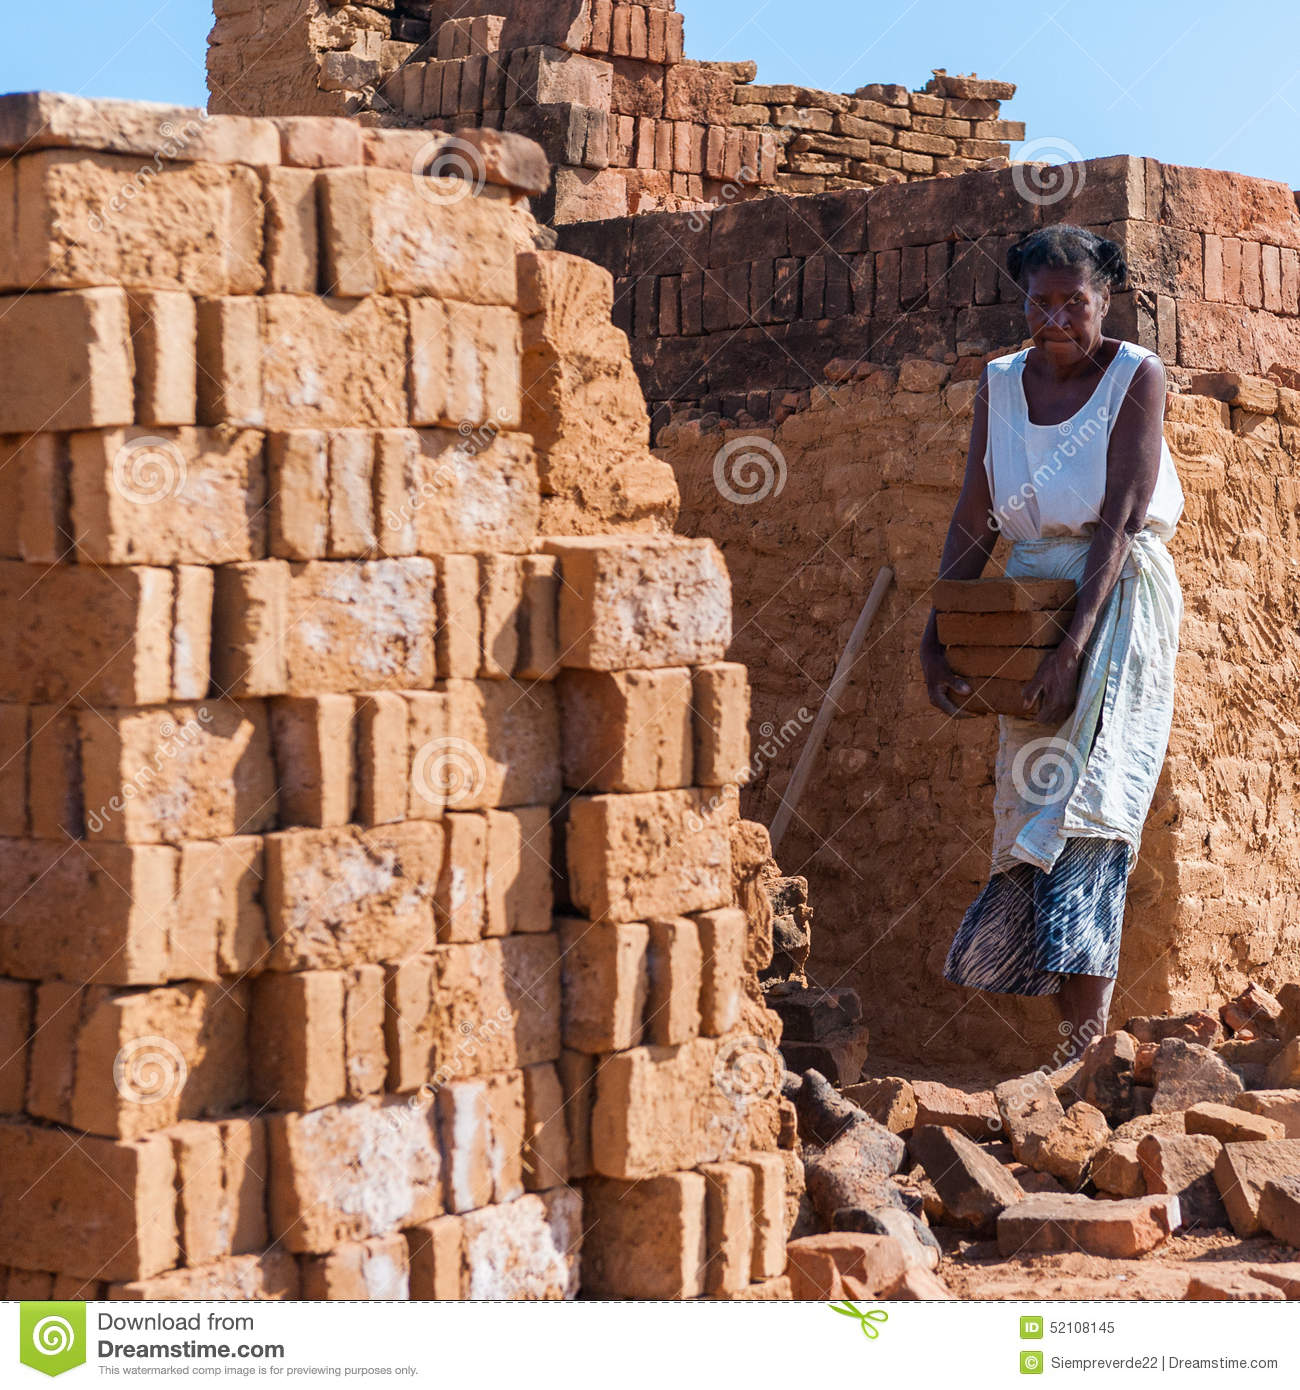 poverty makes people suffer [2] the world bank estimates that in 2012, 896 million people were living on less  than $190 per day  in a poverty-stricken country, the poor suffer from ill health  [5]  the economics online (2016) gives the following information on the.